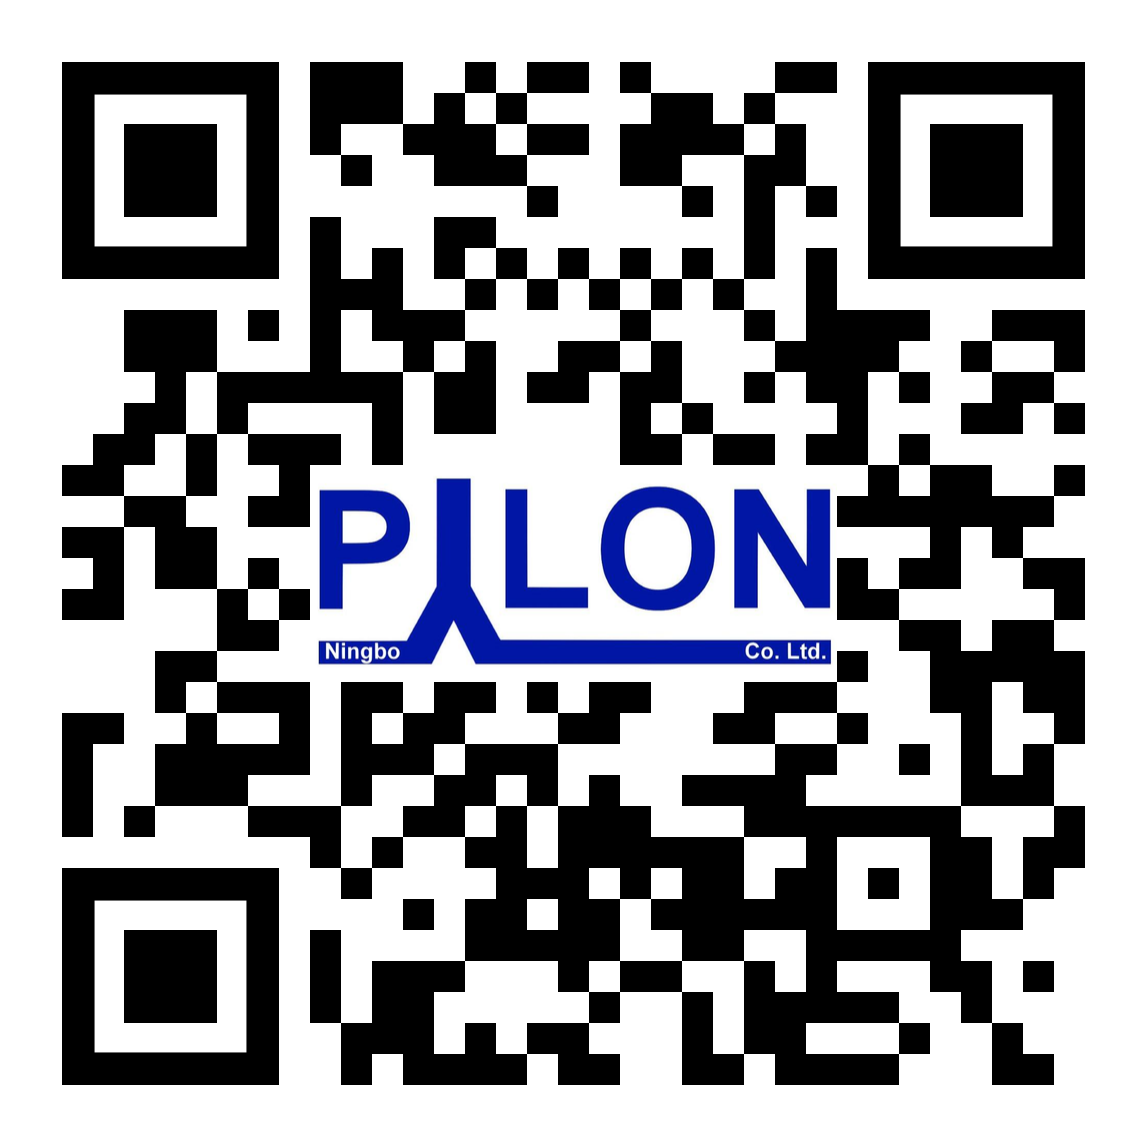 Produkte-Products Pylon Co.,Ltd